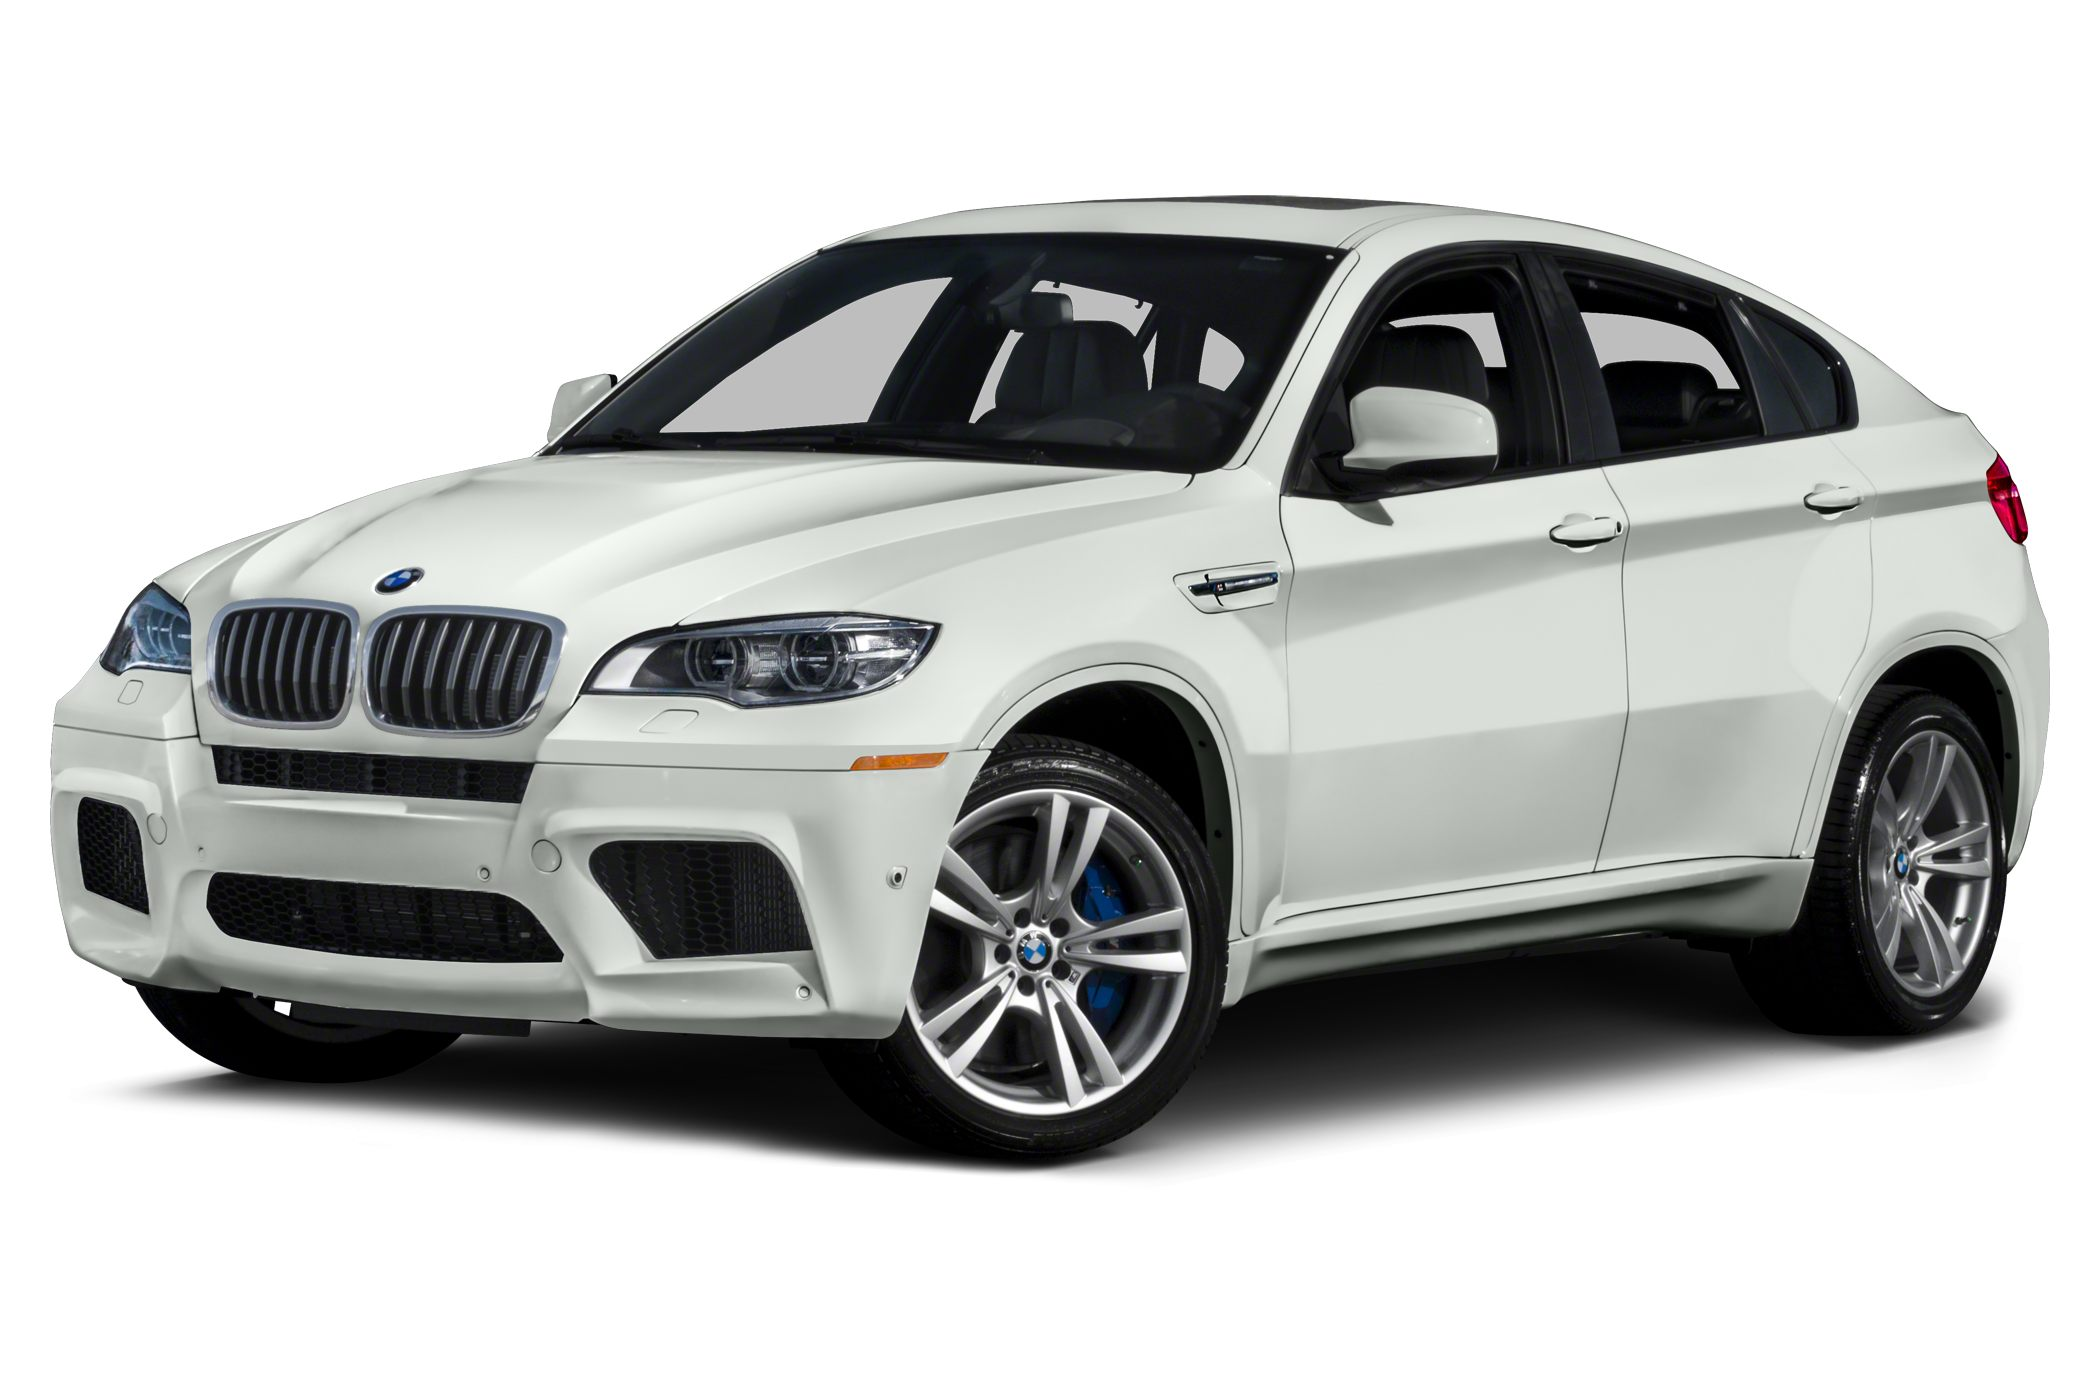 2014 BMW X6 M Base SUV for sale in Chicago for $69,999 with 28,251 miles